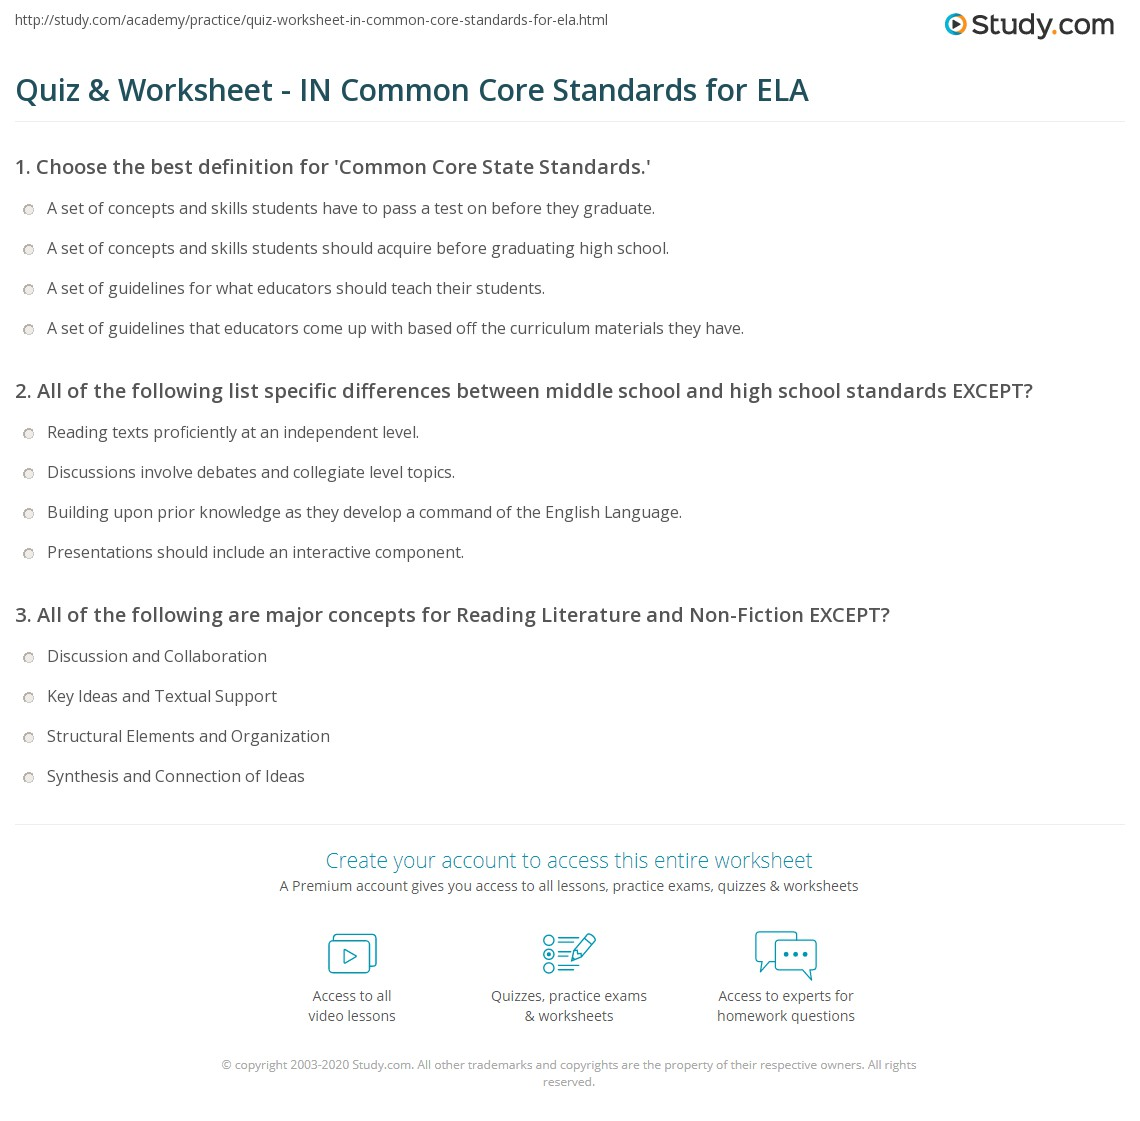 quiz & worksheet - in common core standards for ela | study